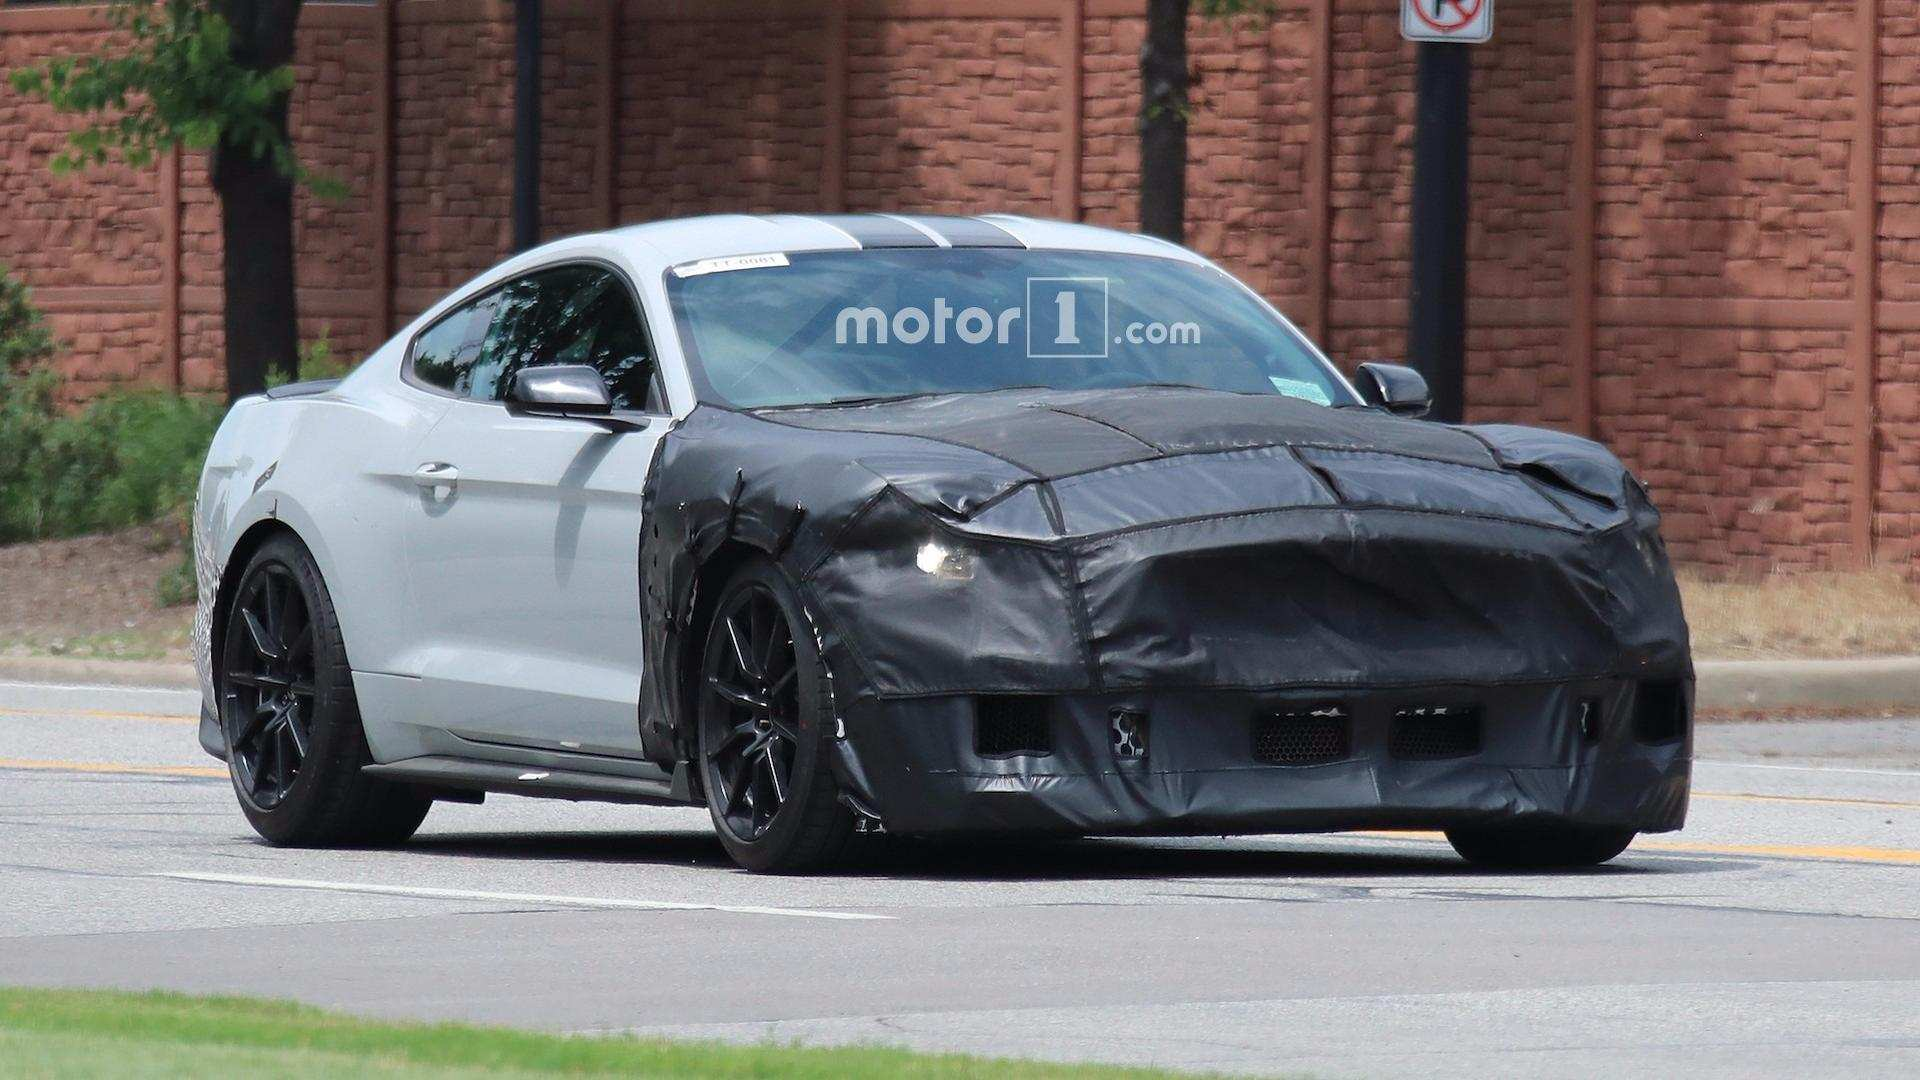 16 New 2019 The Spy Shots Ford Mustang Svt Gt 500 Performance And New Engine